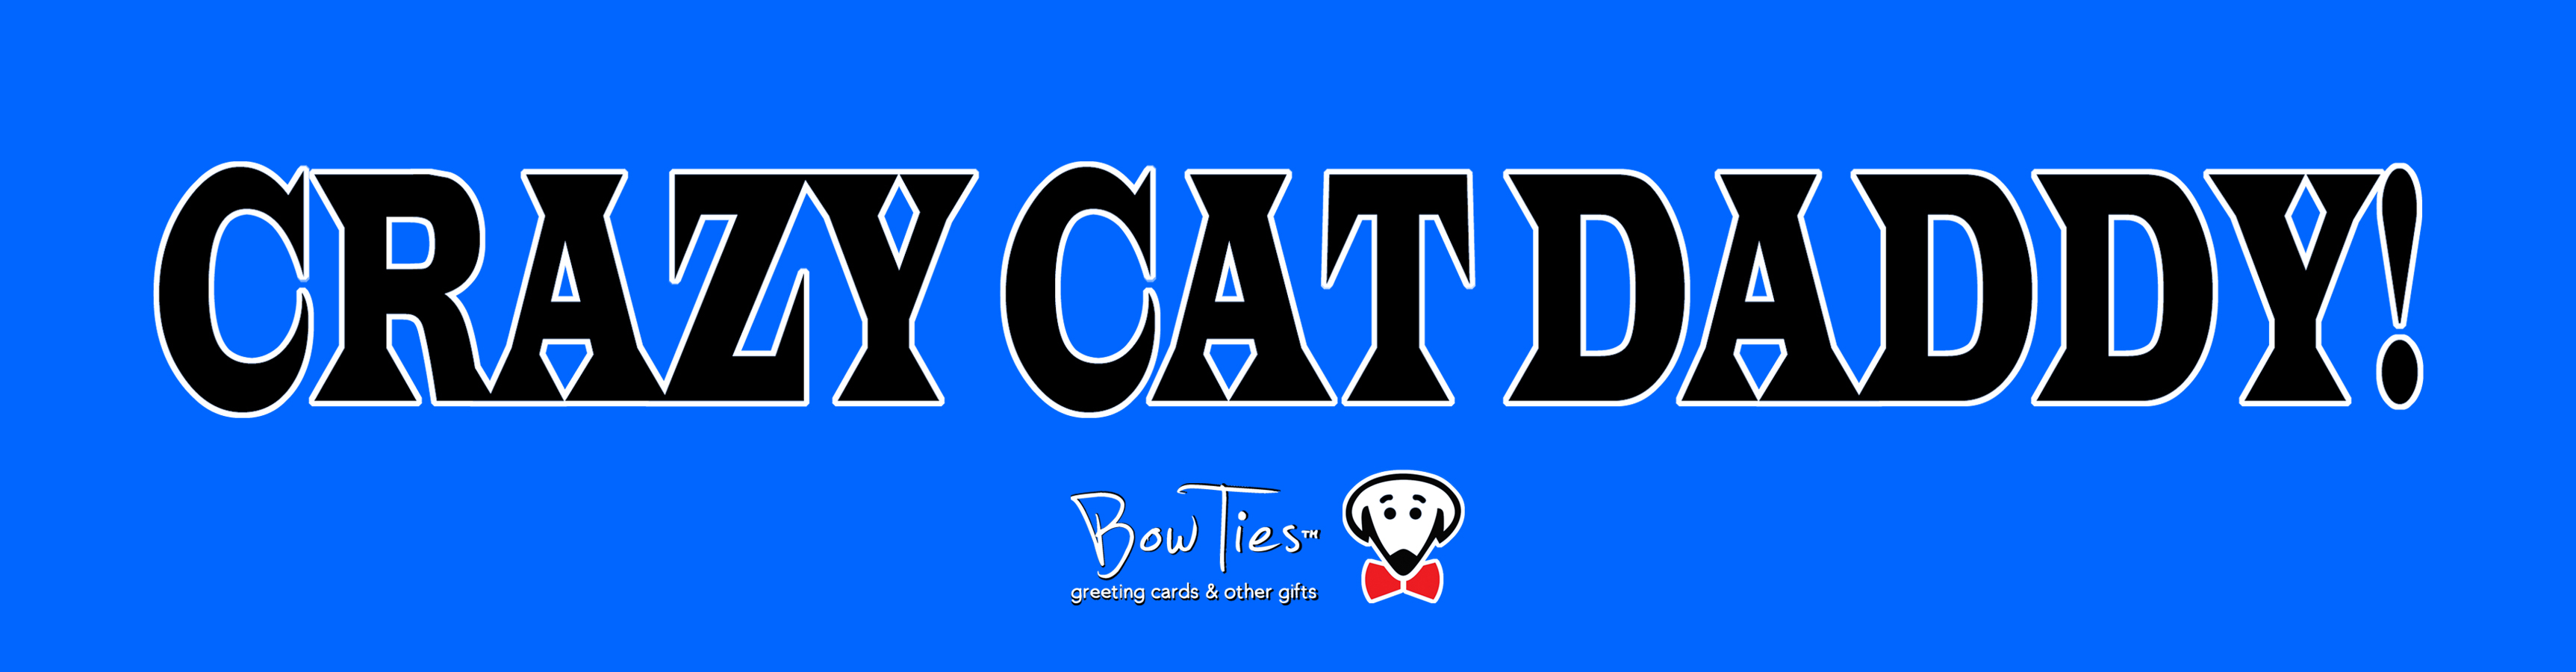 Crazy Cat Daddy – sticker